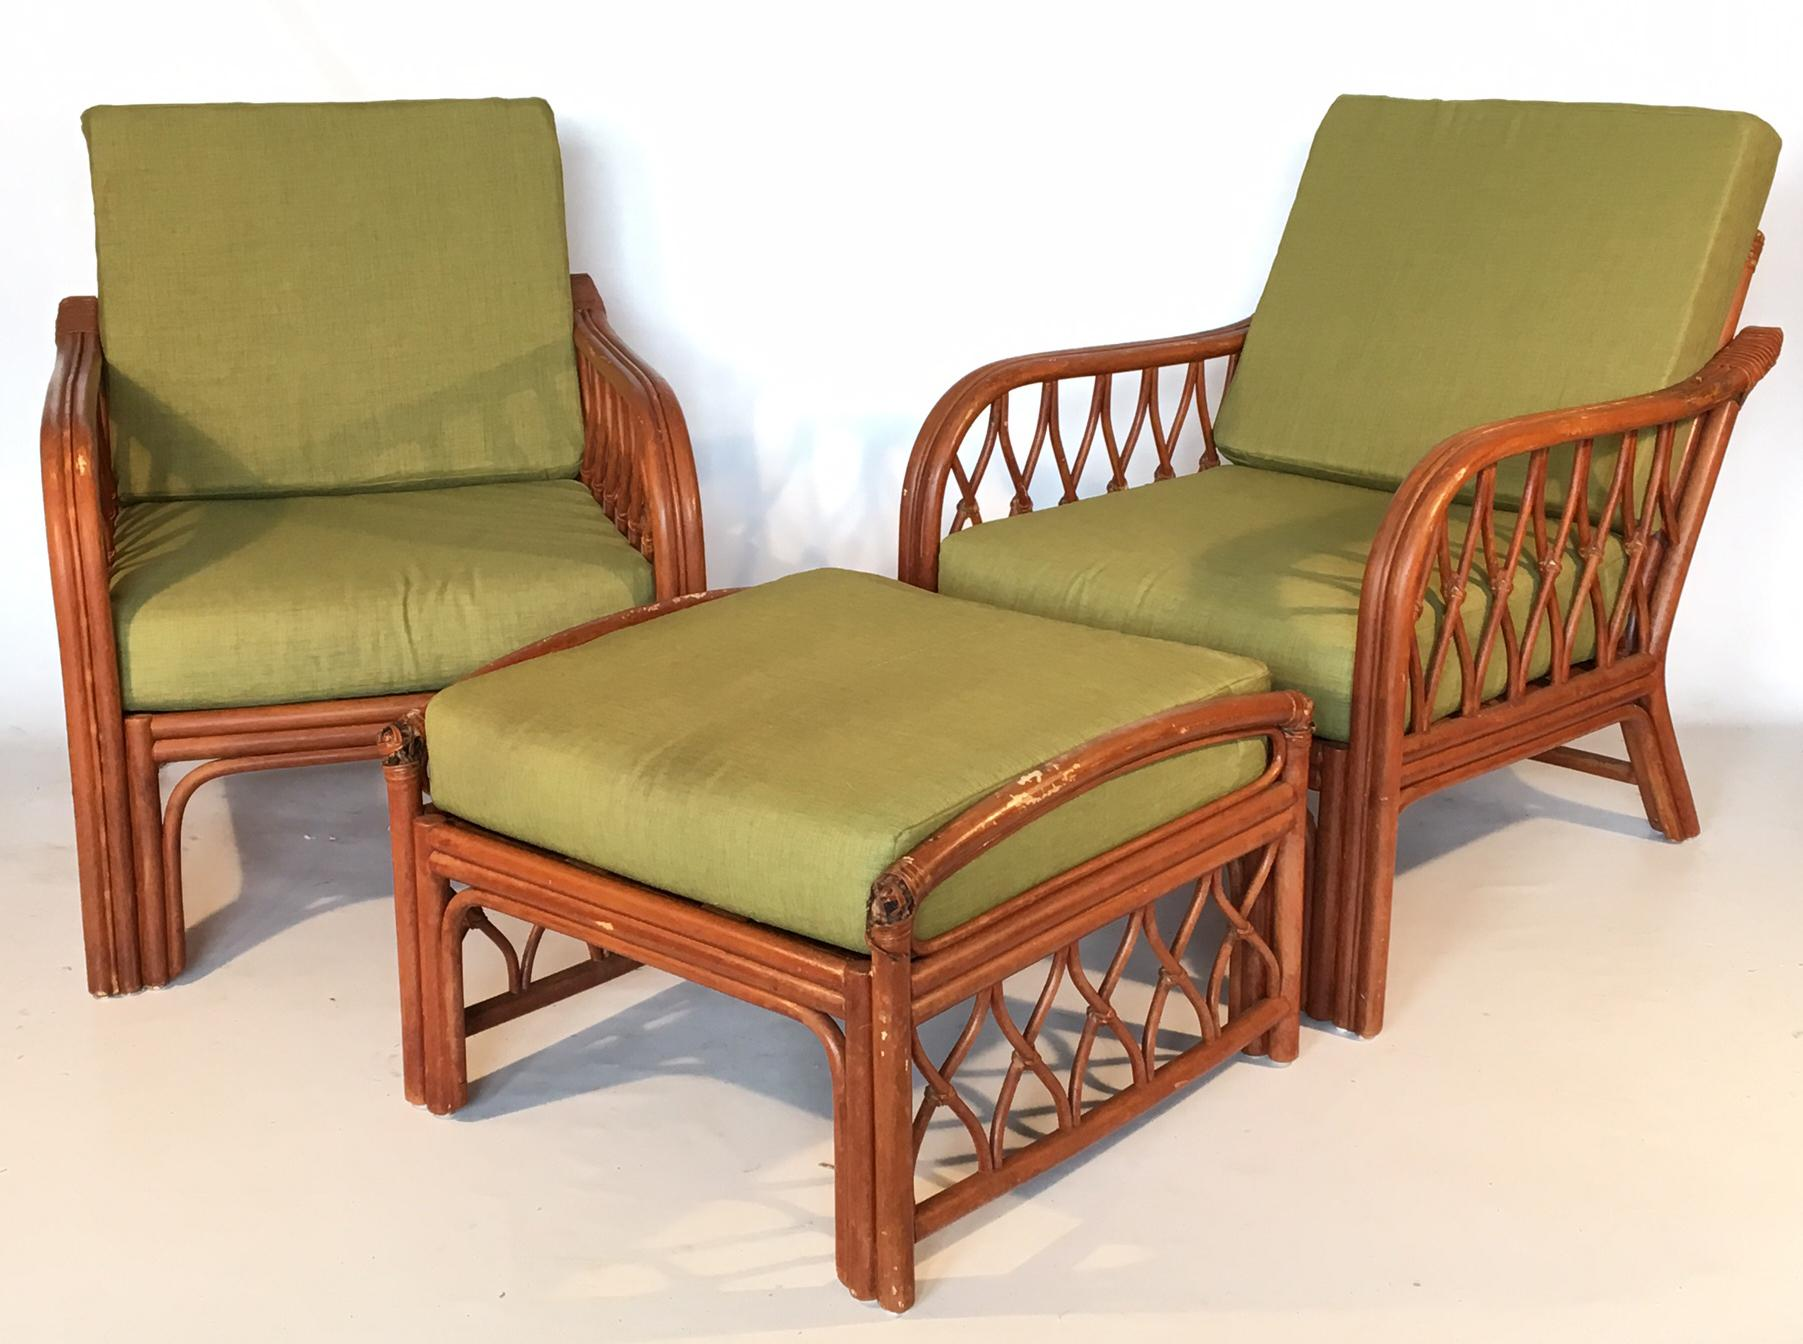 Delicieux Vintage Bamboo Lounge Chairs   A Pair   Image 3 Of 8